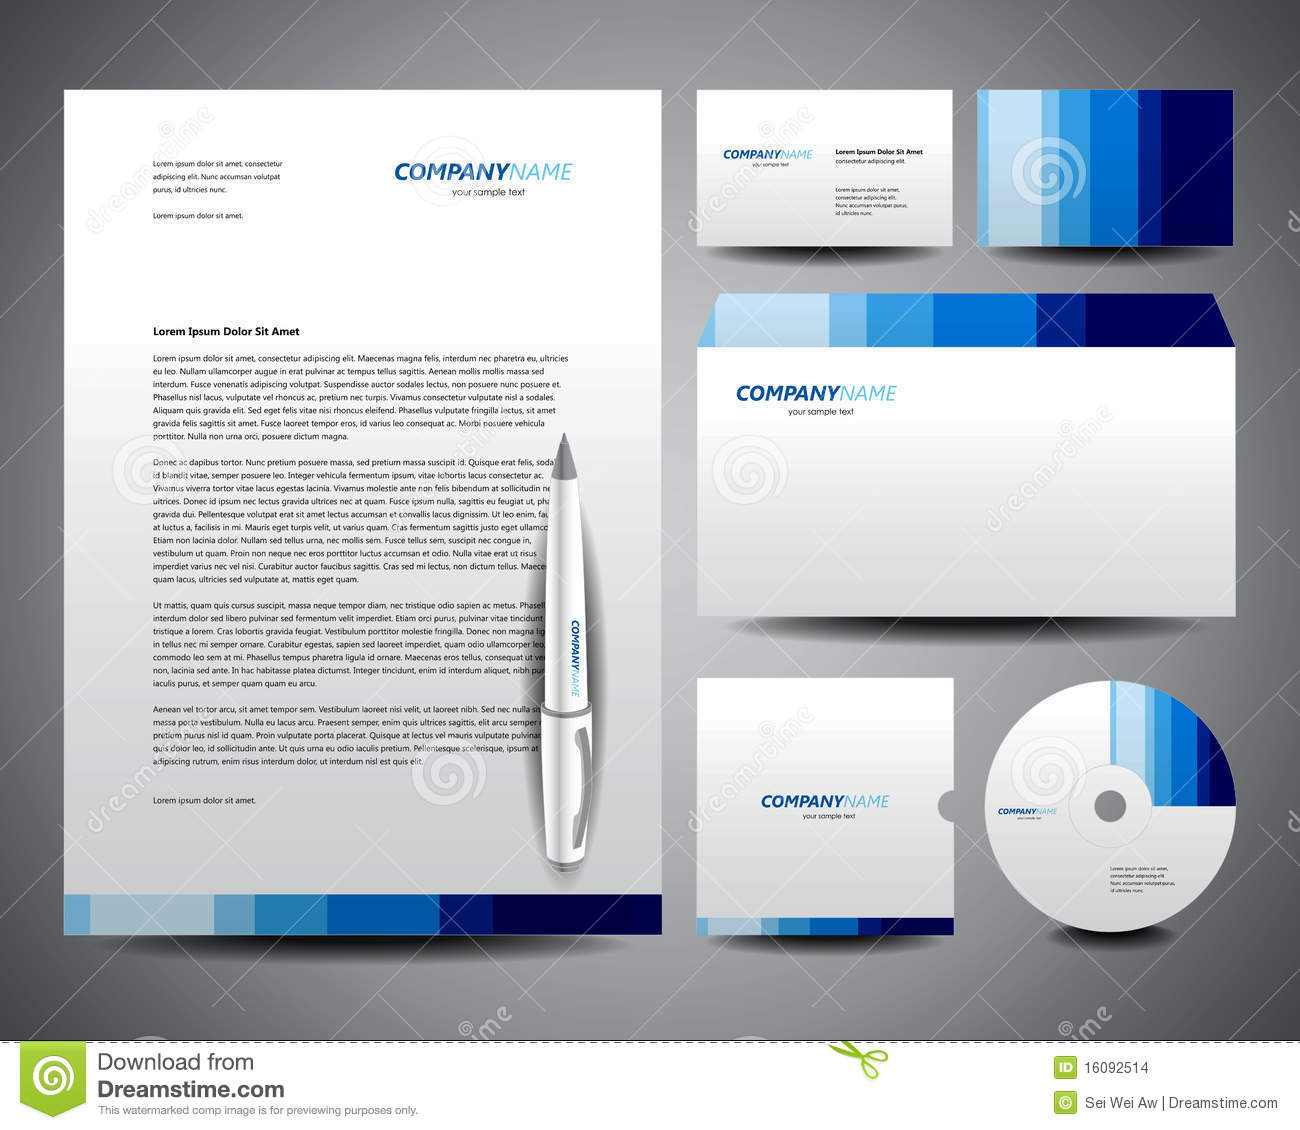 business stationery templates   Fast lunchrock co business stationery templates